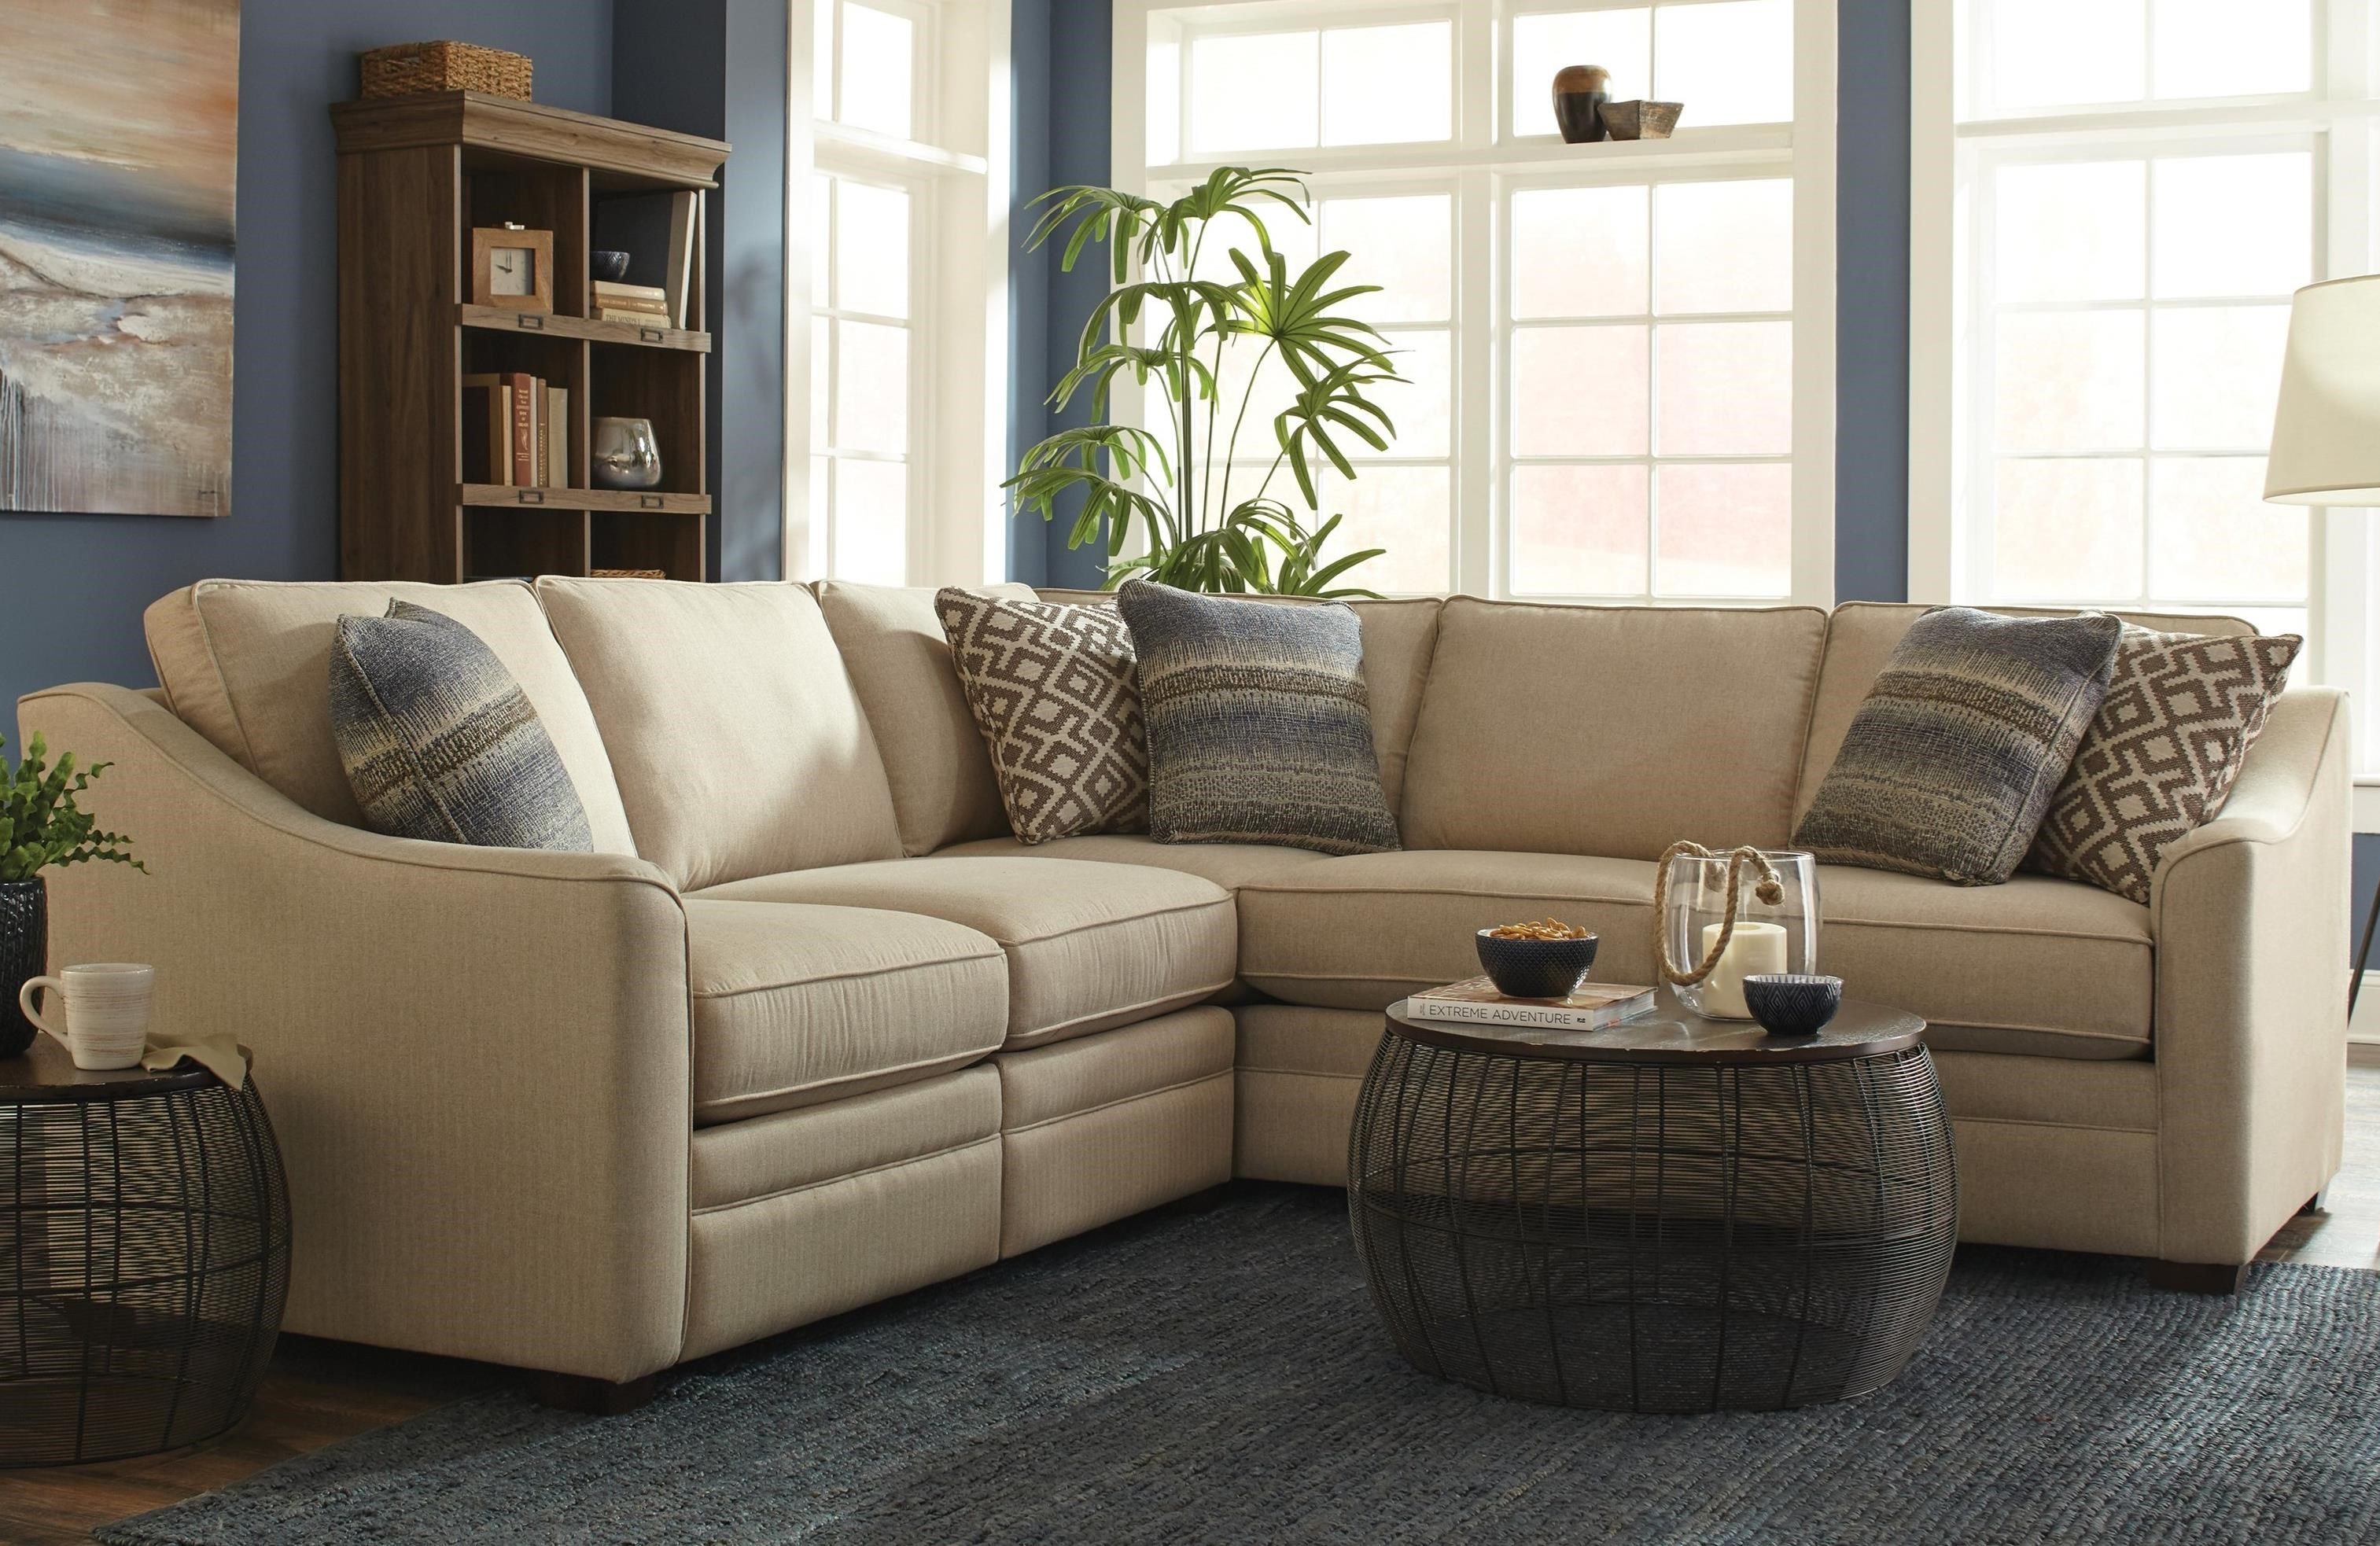 F9 Custom Collection Customizable 2 Piece Sectional With 1 Power Reclining Chair By Hickorycraft At Howell Furniture In 2020 Sectional Sofa With Recliner Craftmaster Furniture Living Room Sectional